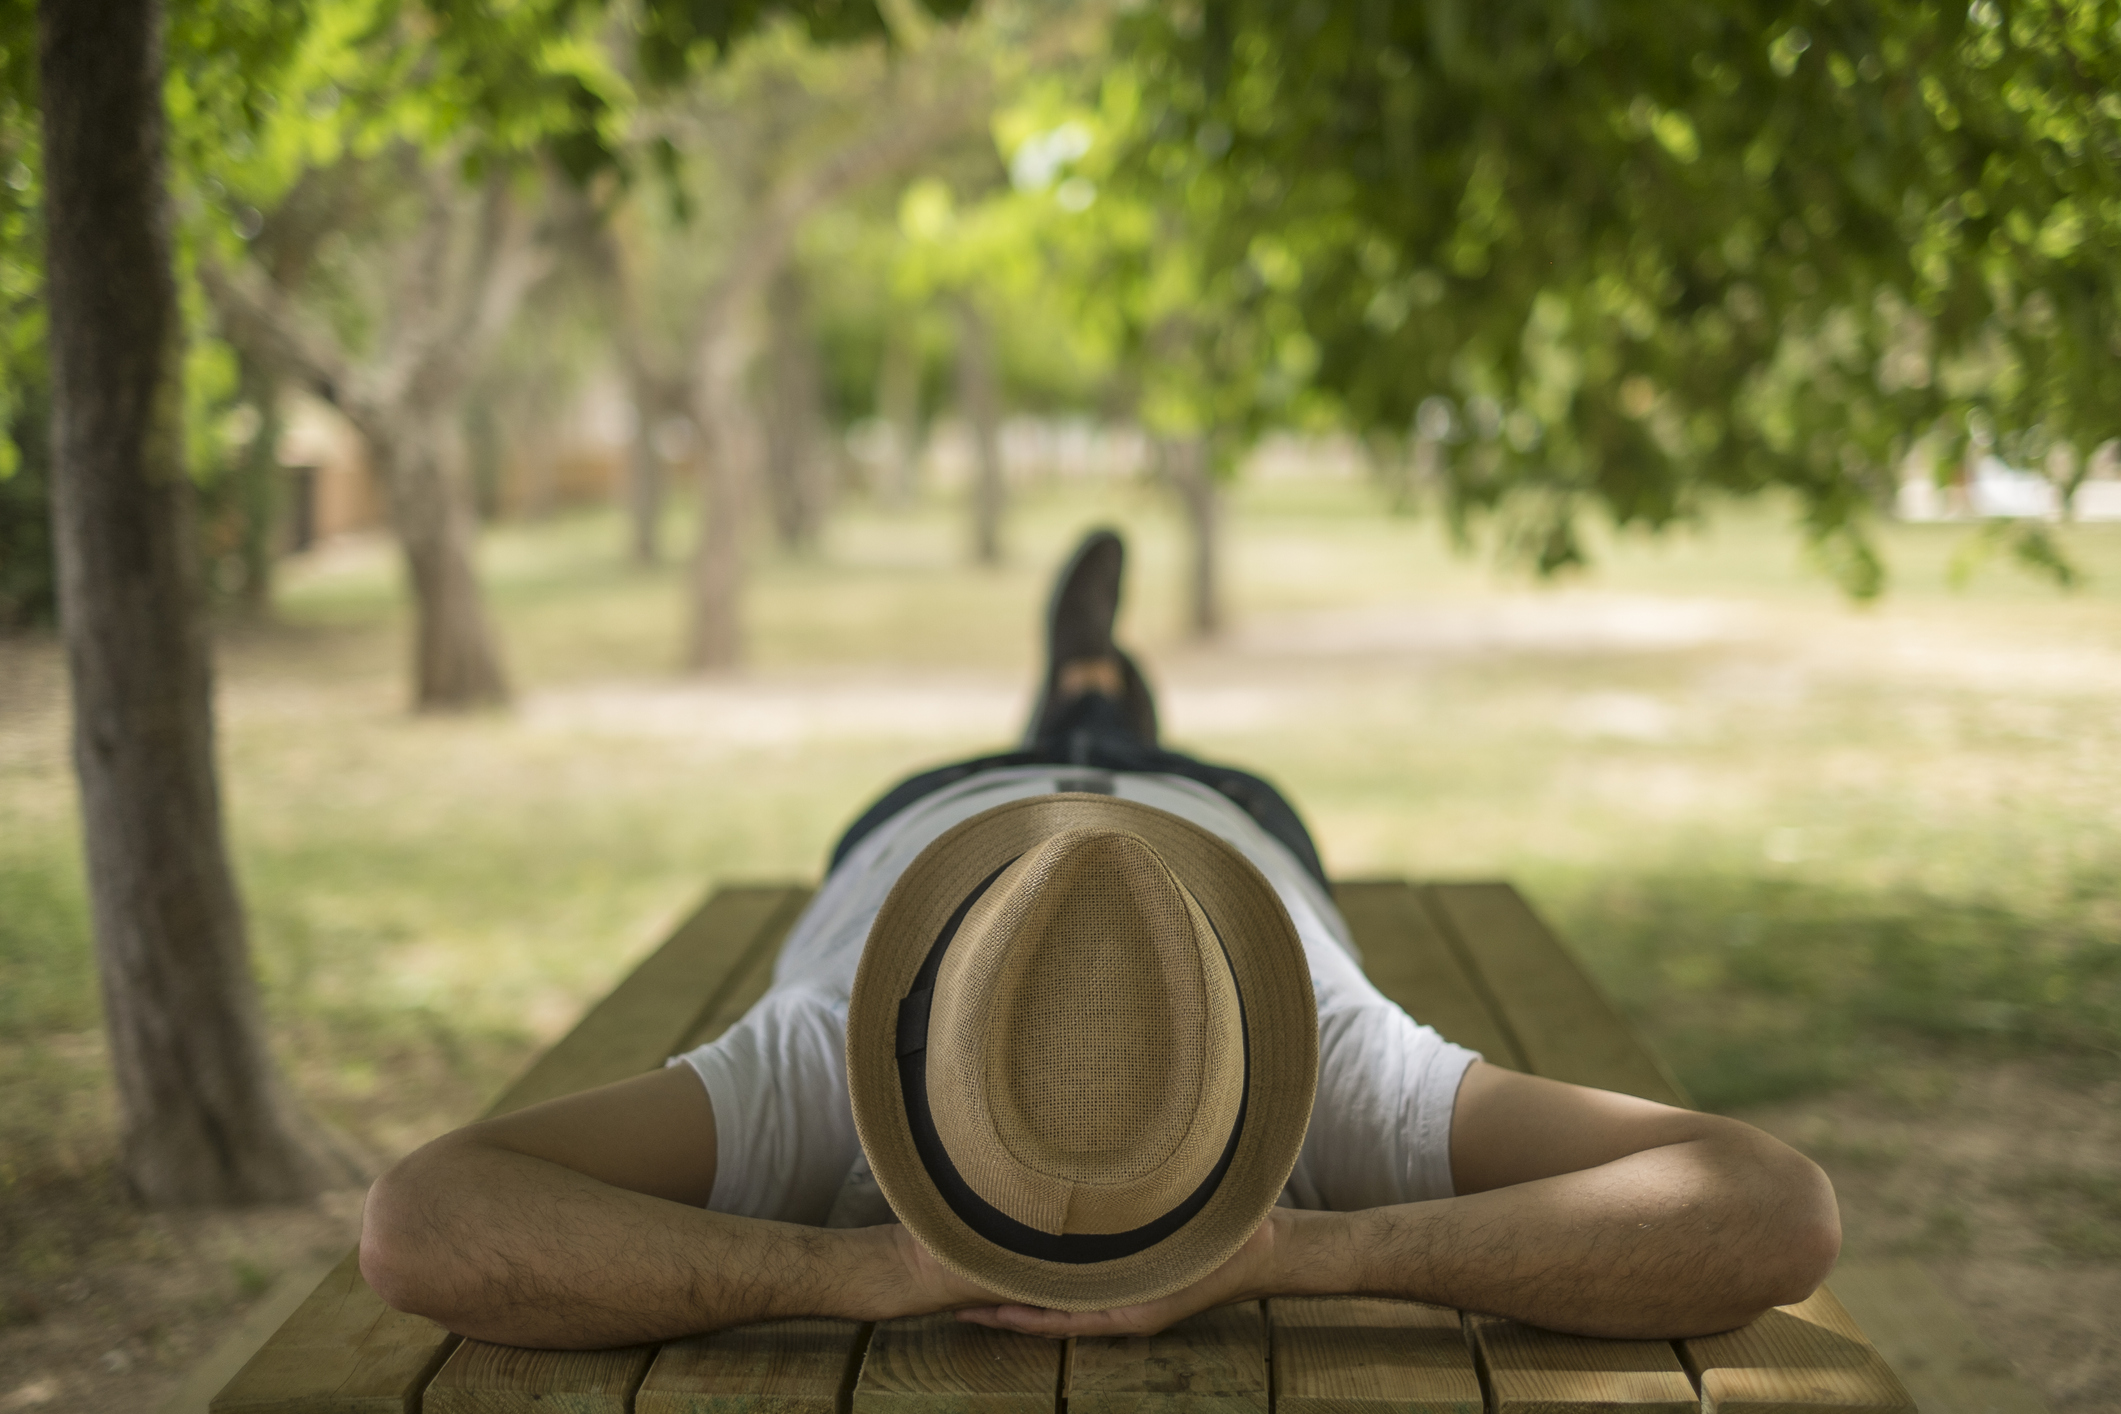 Taking a quick nap can be helpful if you're feeling overly sluggish or tired.